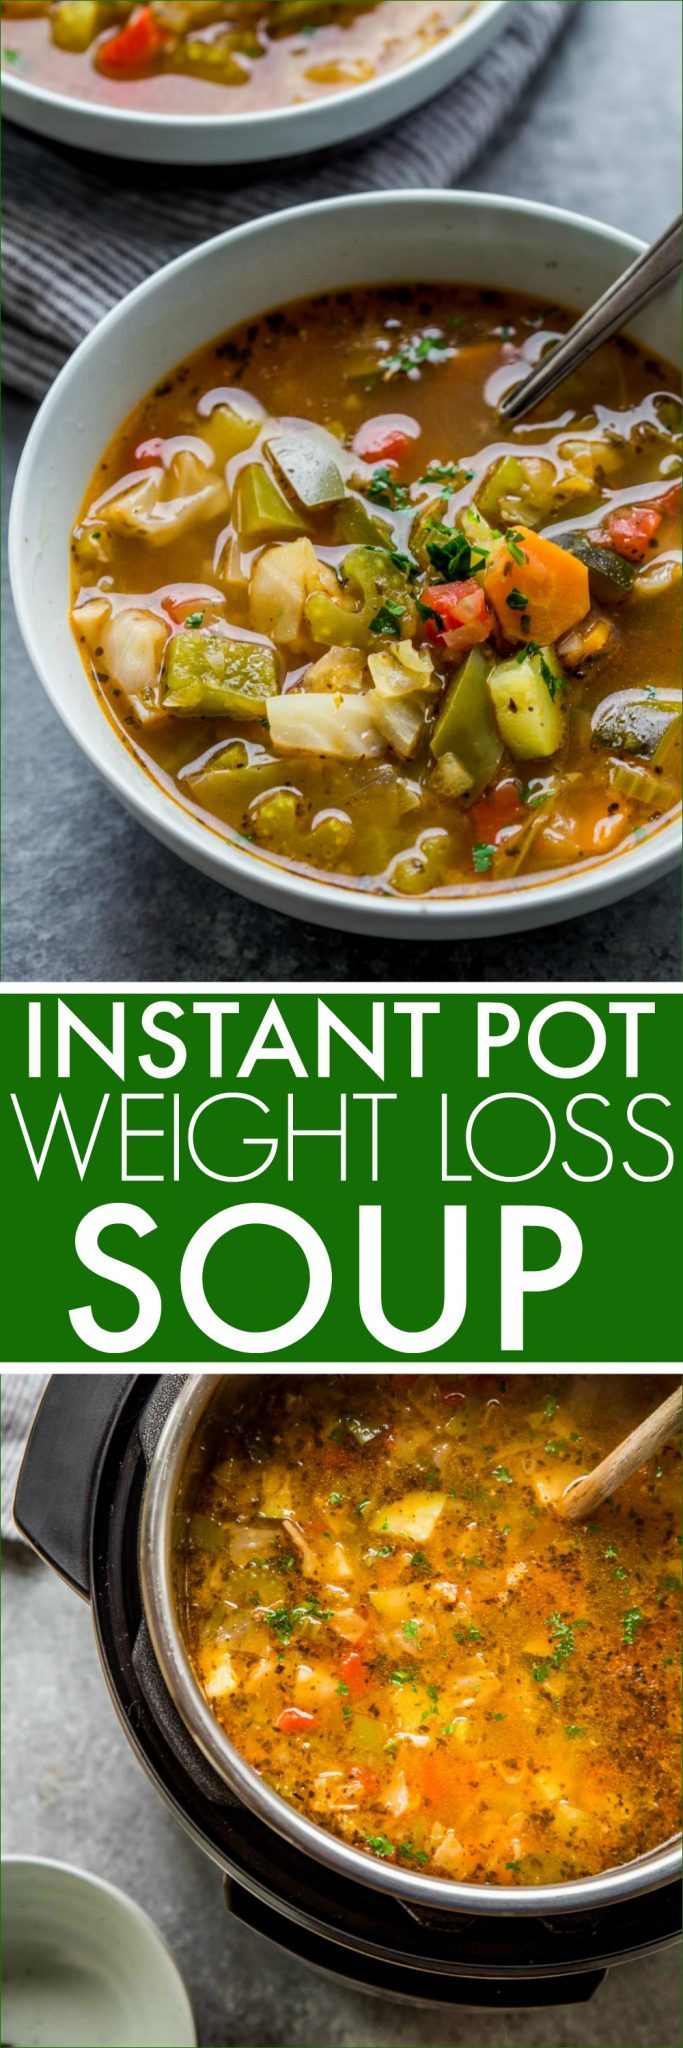 Instant Pot Low Calorie Recipes  Instant Pot Weight Loss Soup with Stovetop Instructions